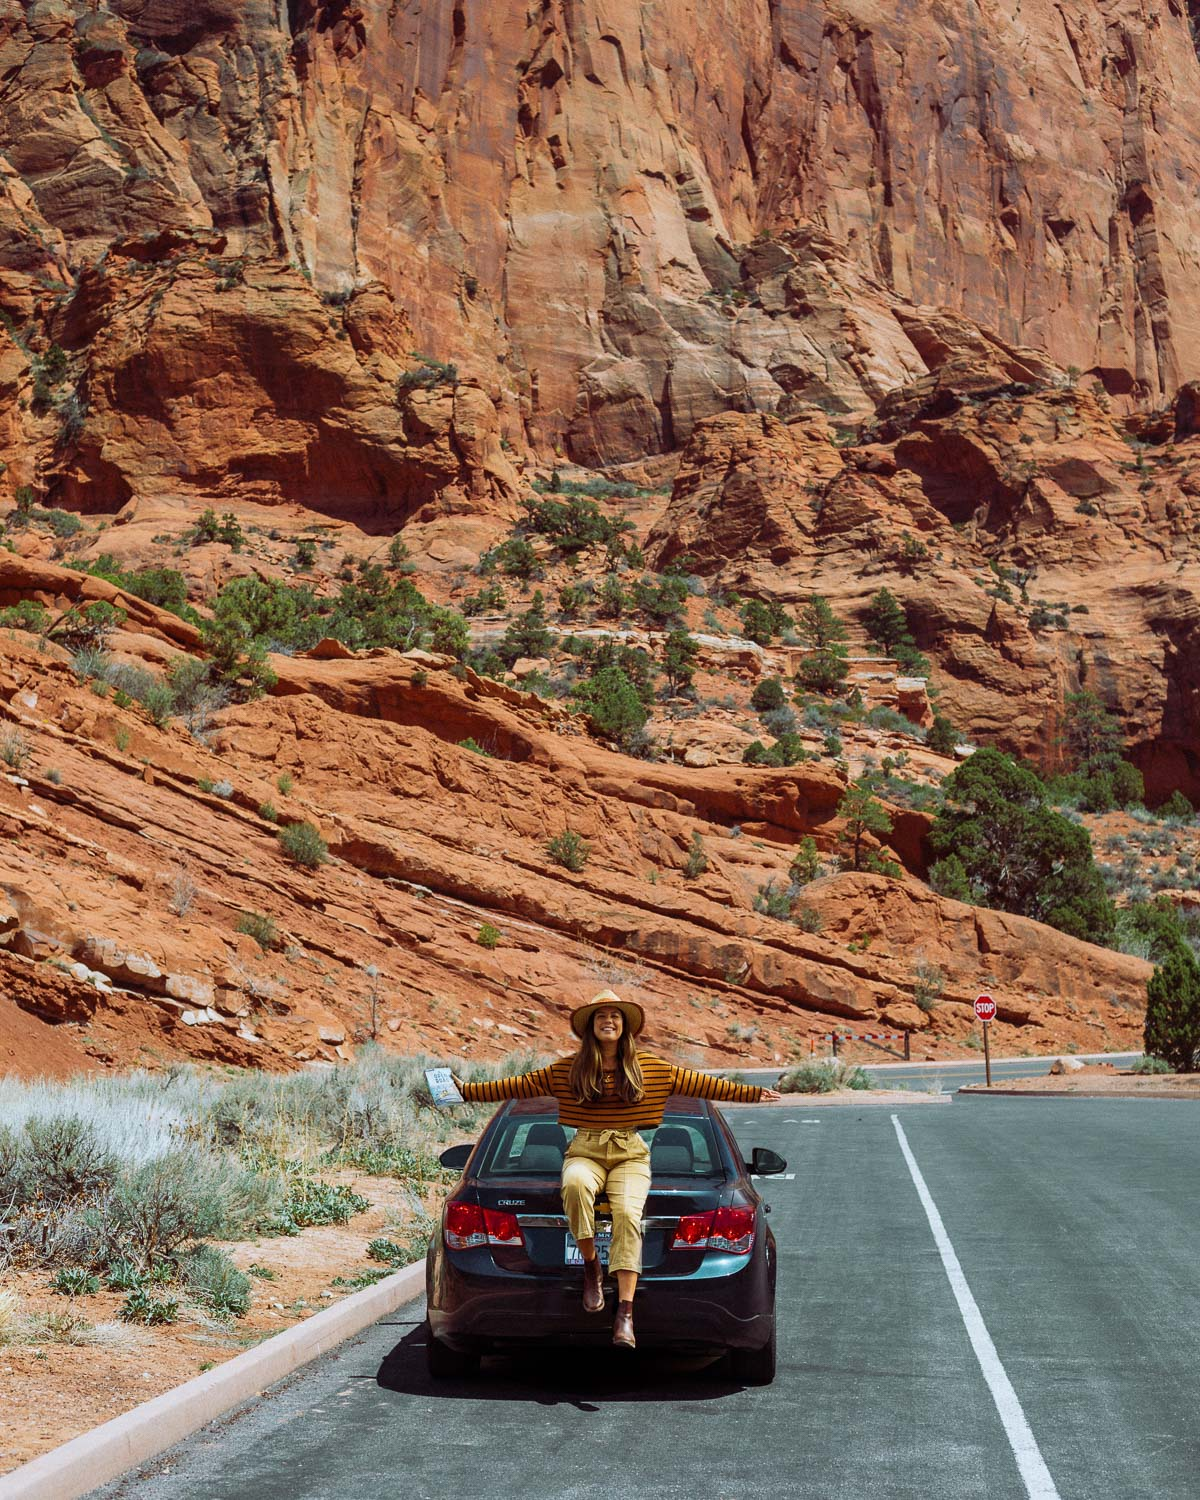 Rachel Off Duty: A Woman Sits on the Back of a Sedan in a National Park Parking Lot